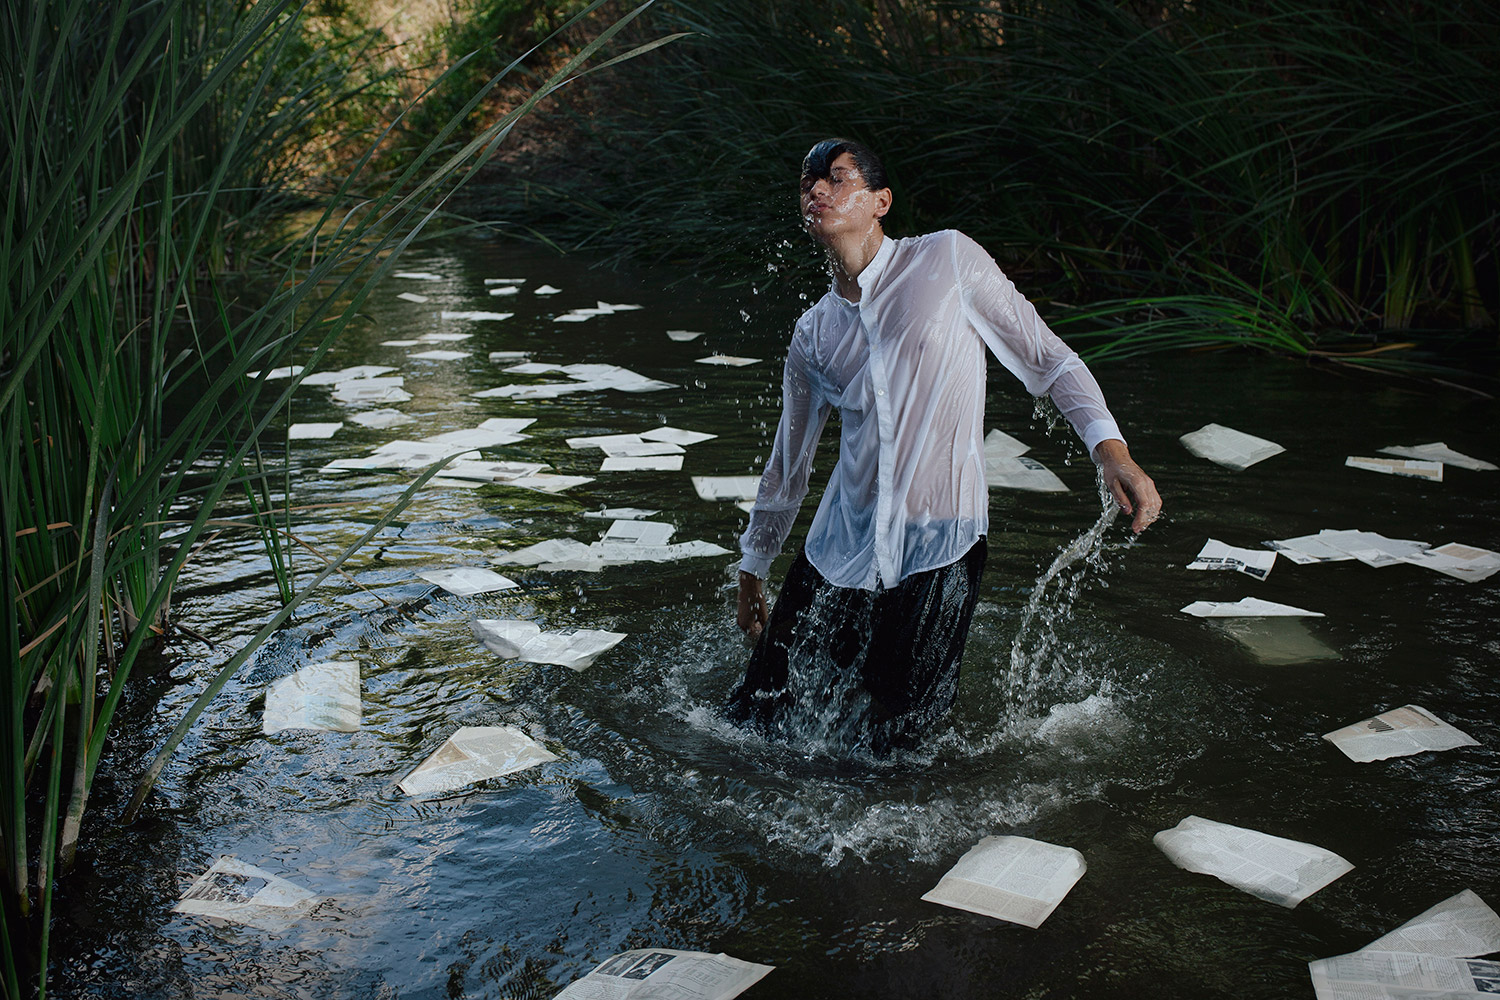 Alex Stoddard - Paper in the water